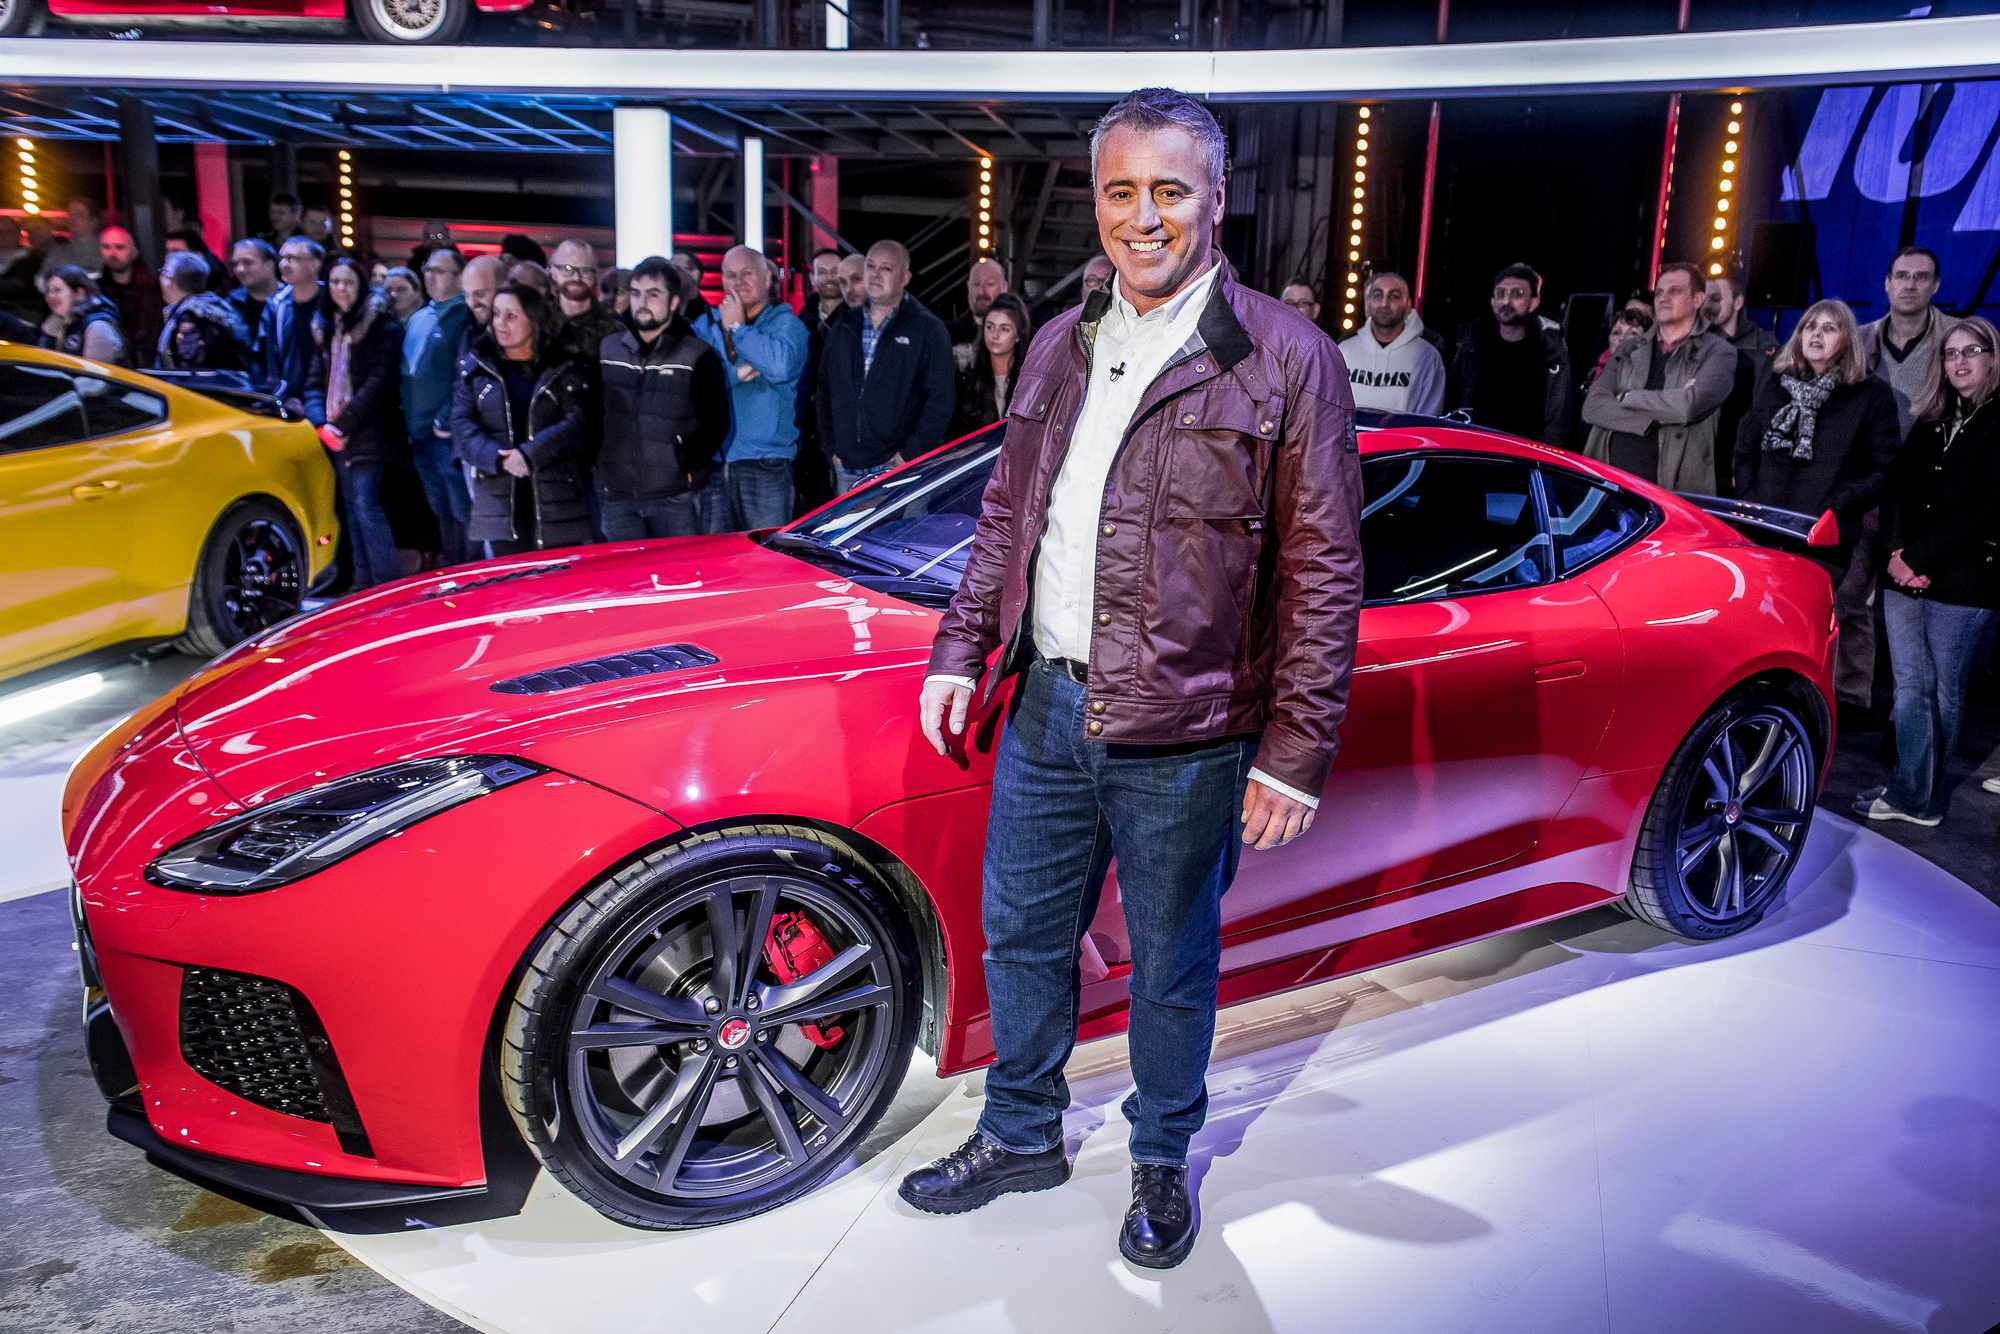 Matt le blanc top gear